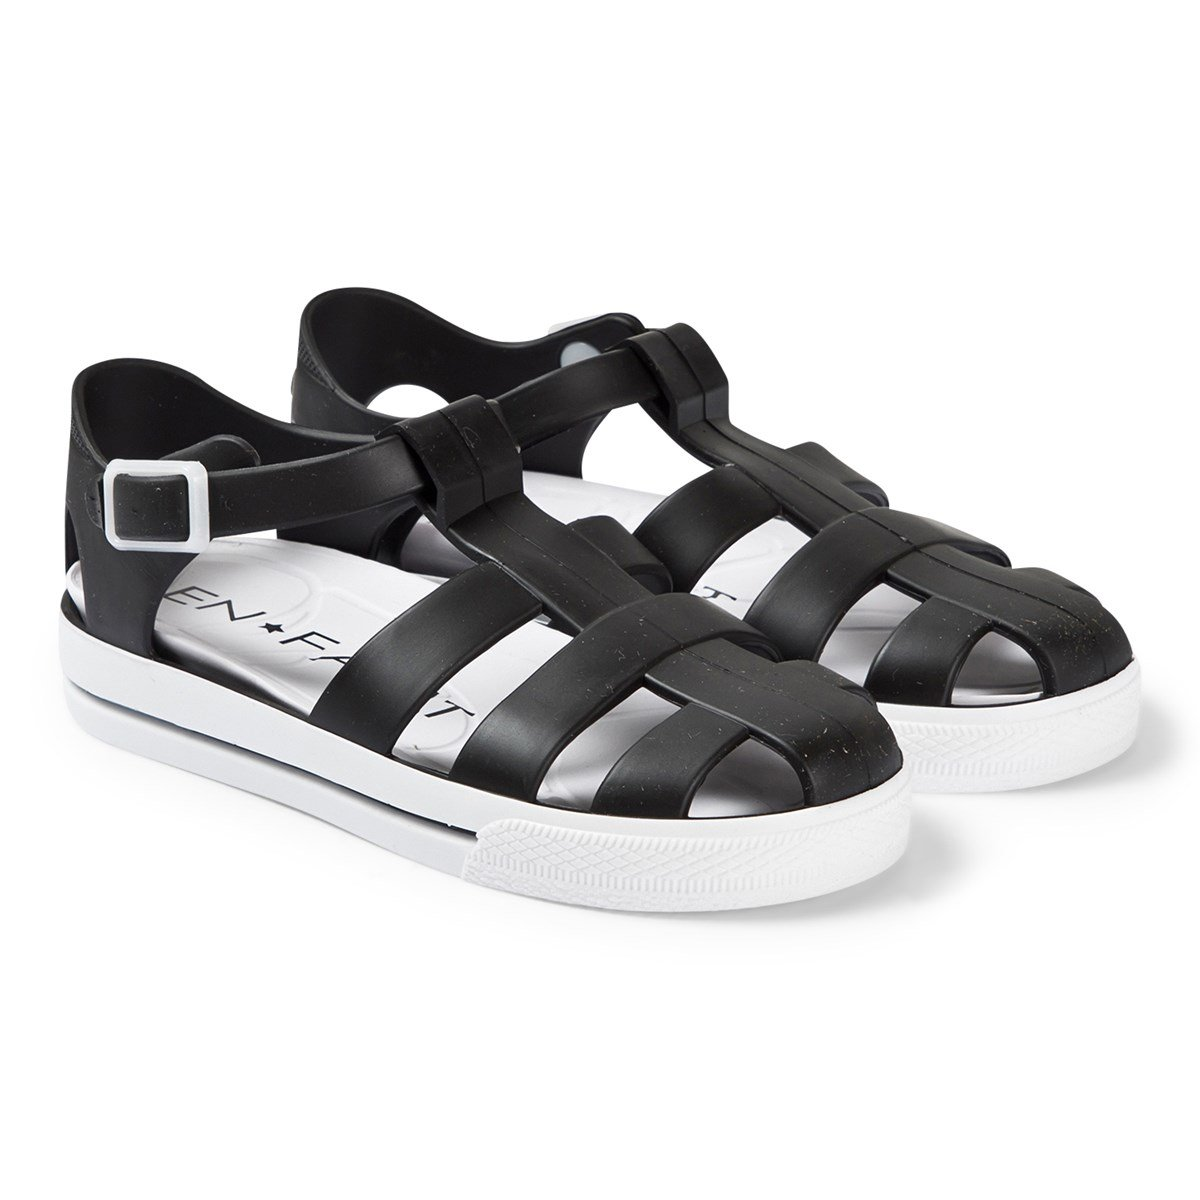 d52104e3 EnFant - Castor Sandals Black - Babyshop.no